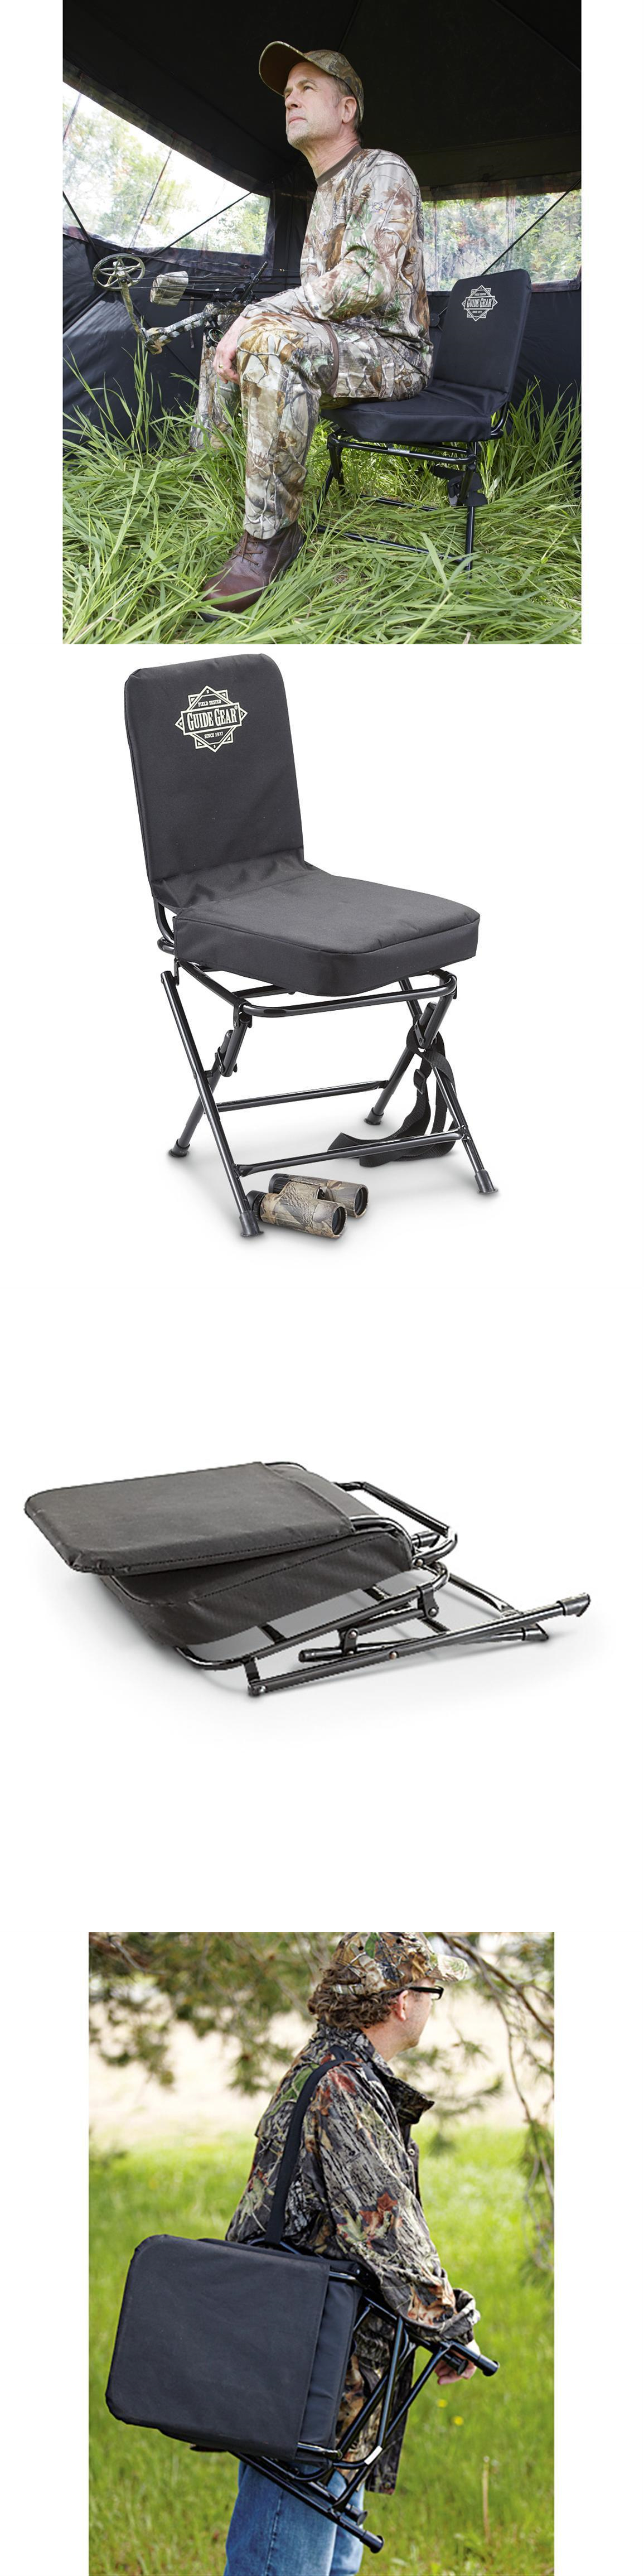 Seats and Chairs Swivel Hunting Chair Outdoor Archery Bow